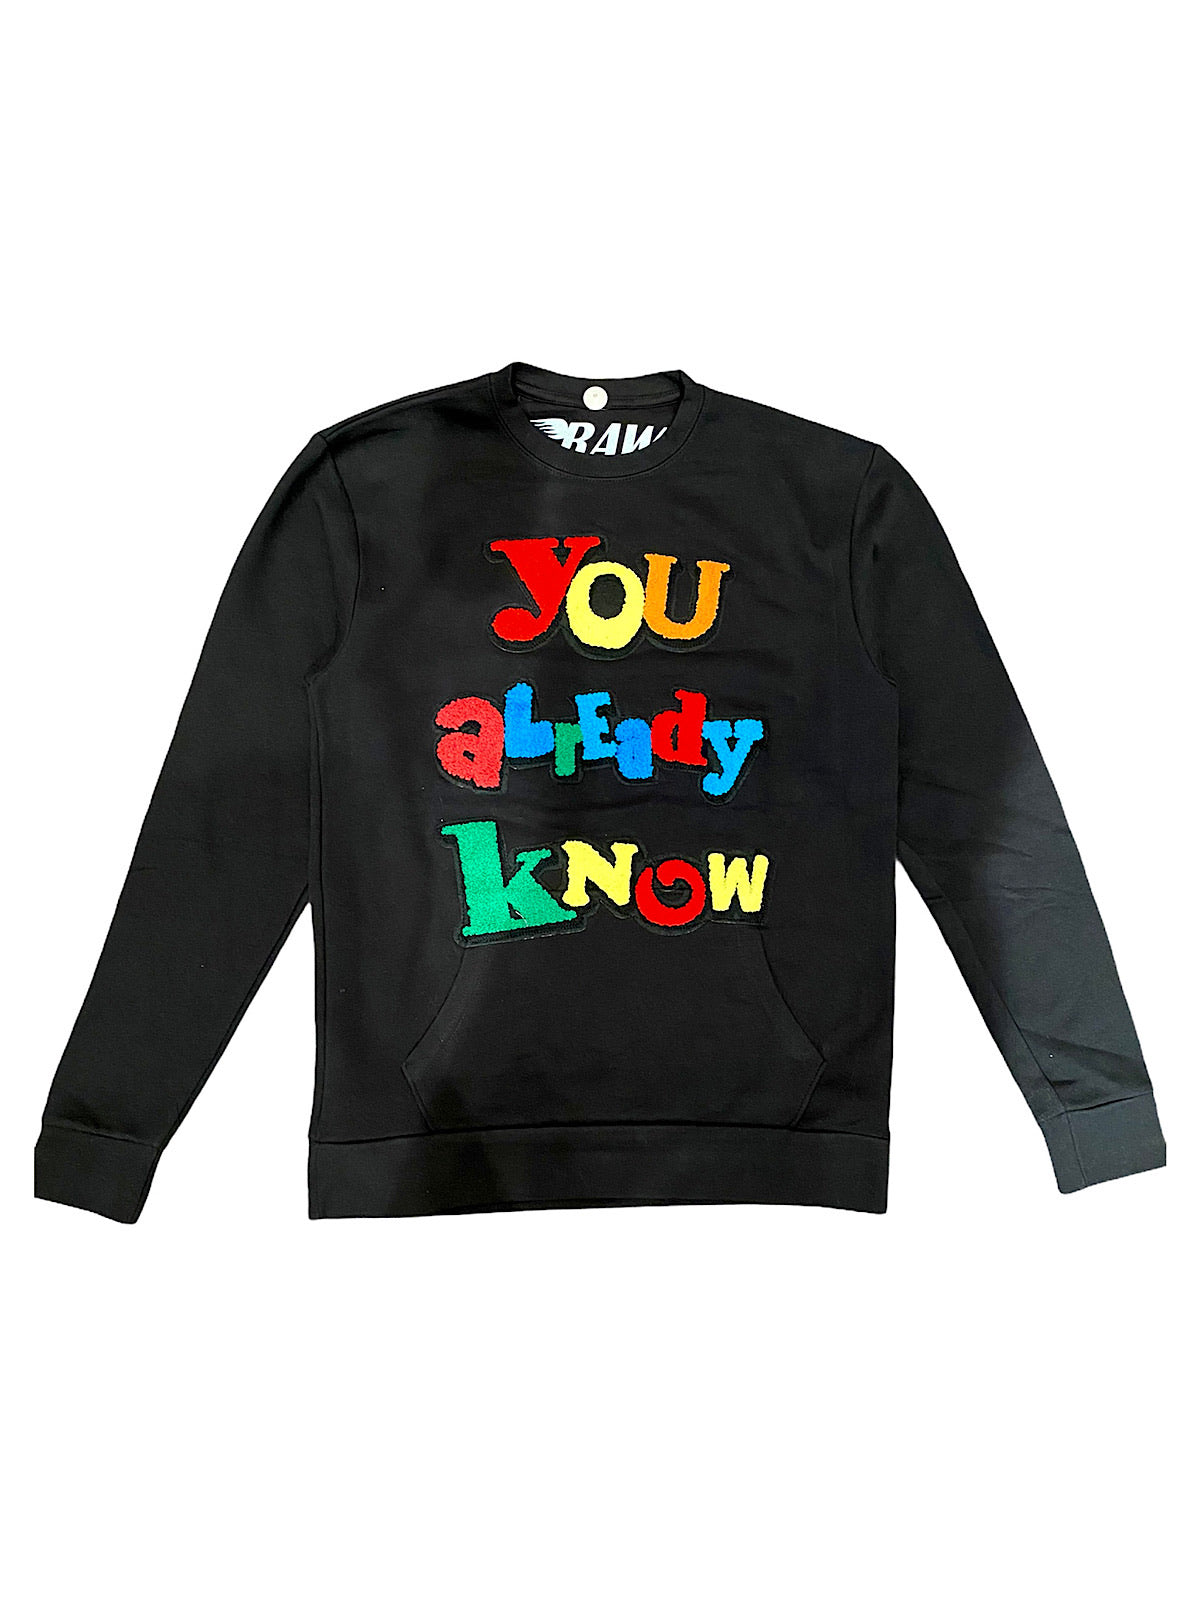 Rawyalty Sweater - You Already Know - Black And Multi